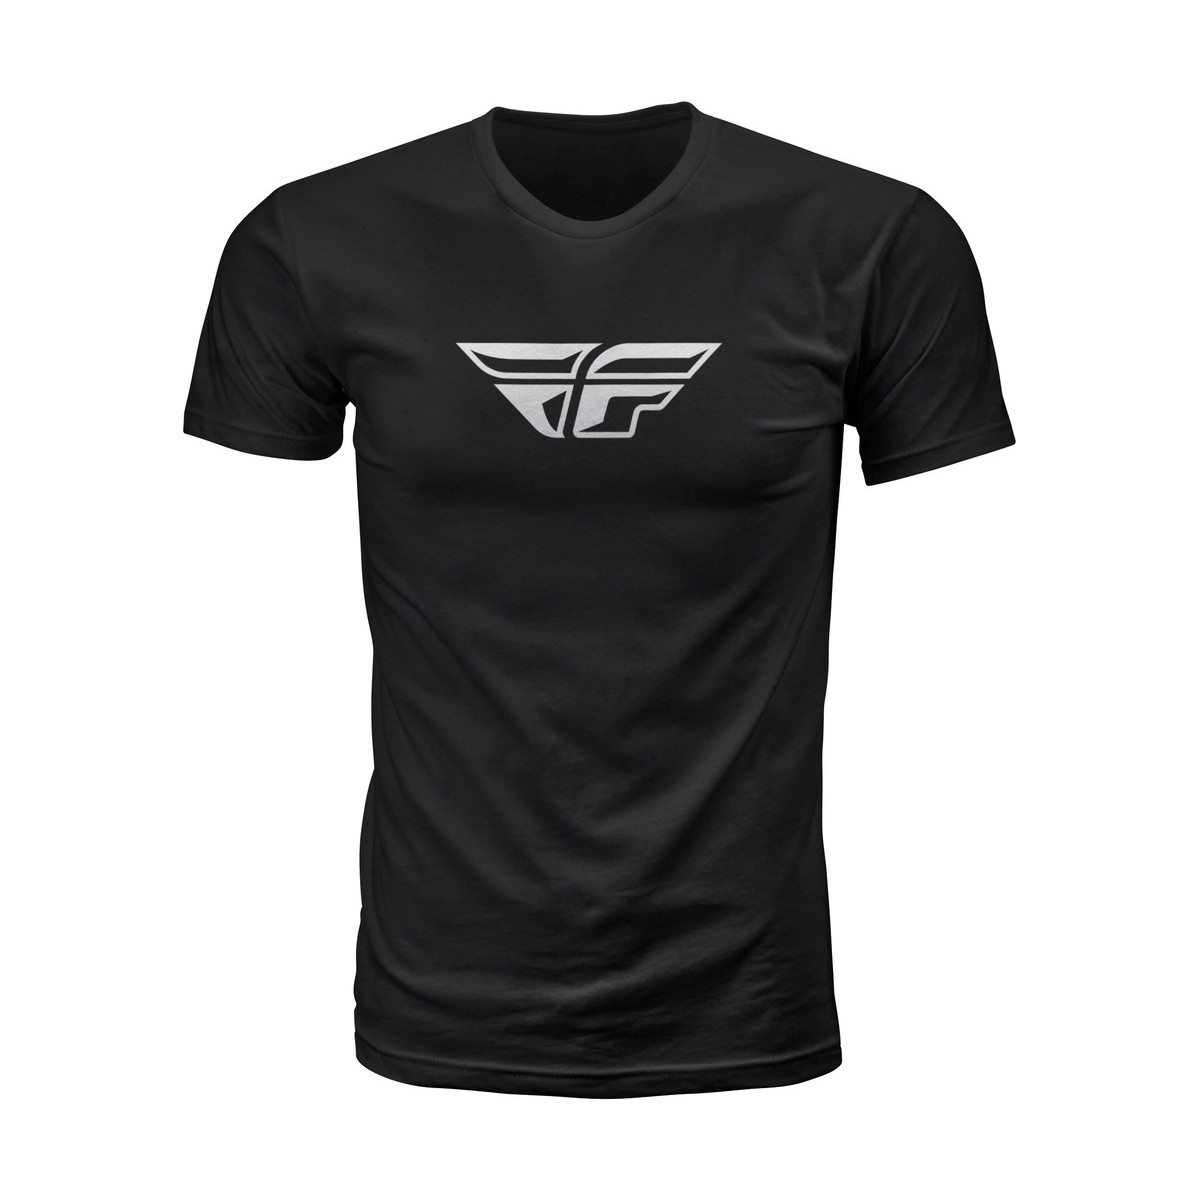 FLY F-WING TEE